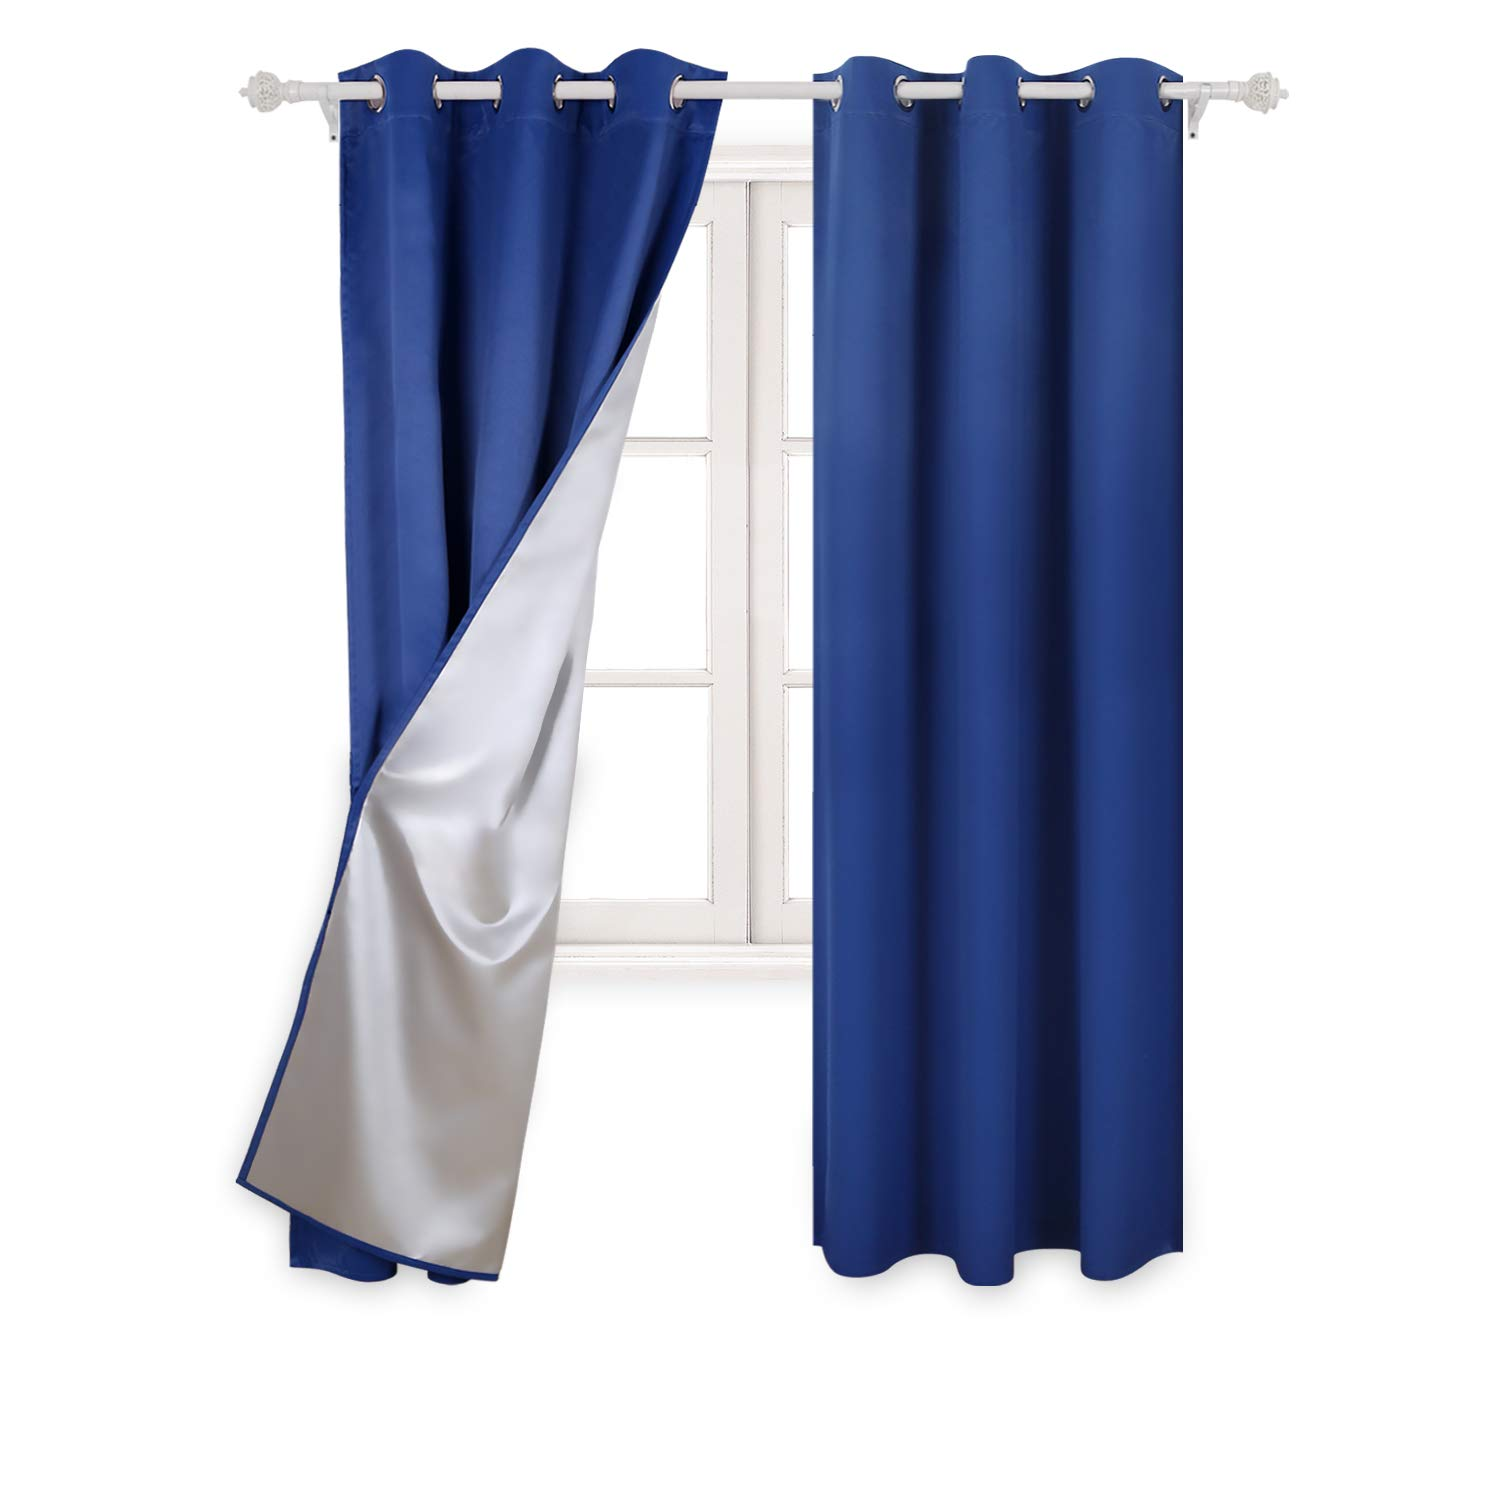 Deconovo Decorative Blackout Curtains with Silver Backing Room Darkening Shades for Boys Room 42W x 84L inch Royal Blue 2 Panels